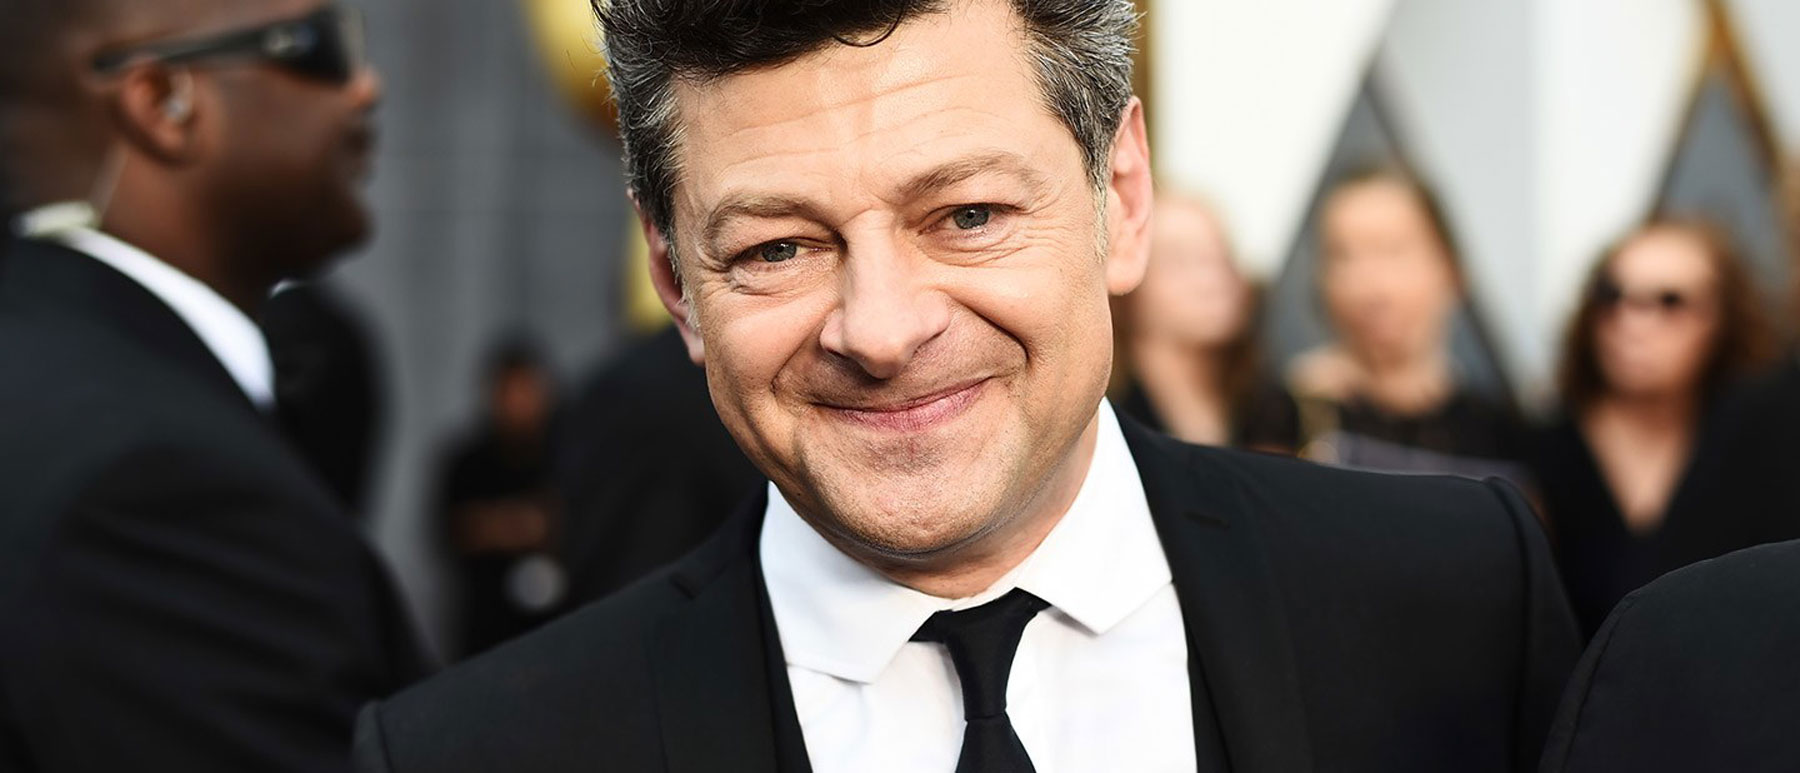 Andy-Serkis-alfred-pennyworth-the-batman